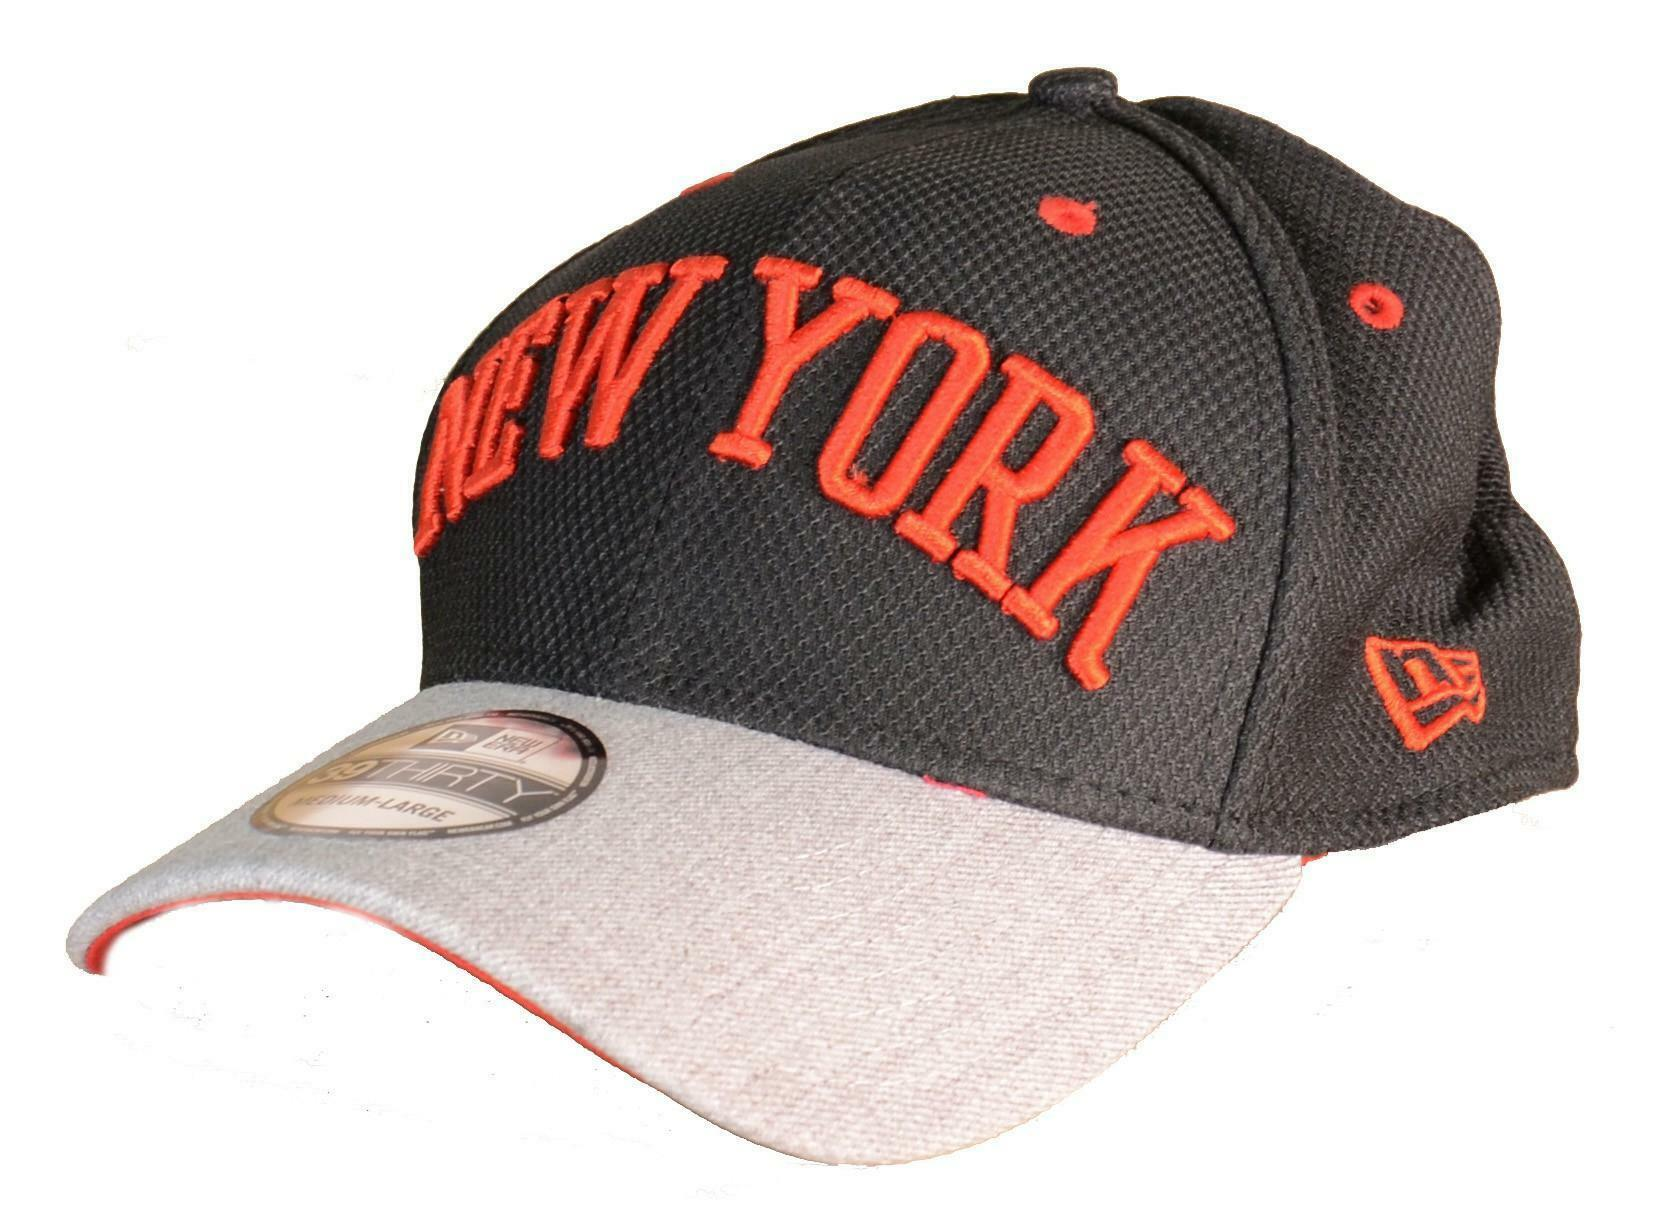 new era new era cappello visiera new york nero rosso 3930